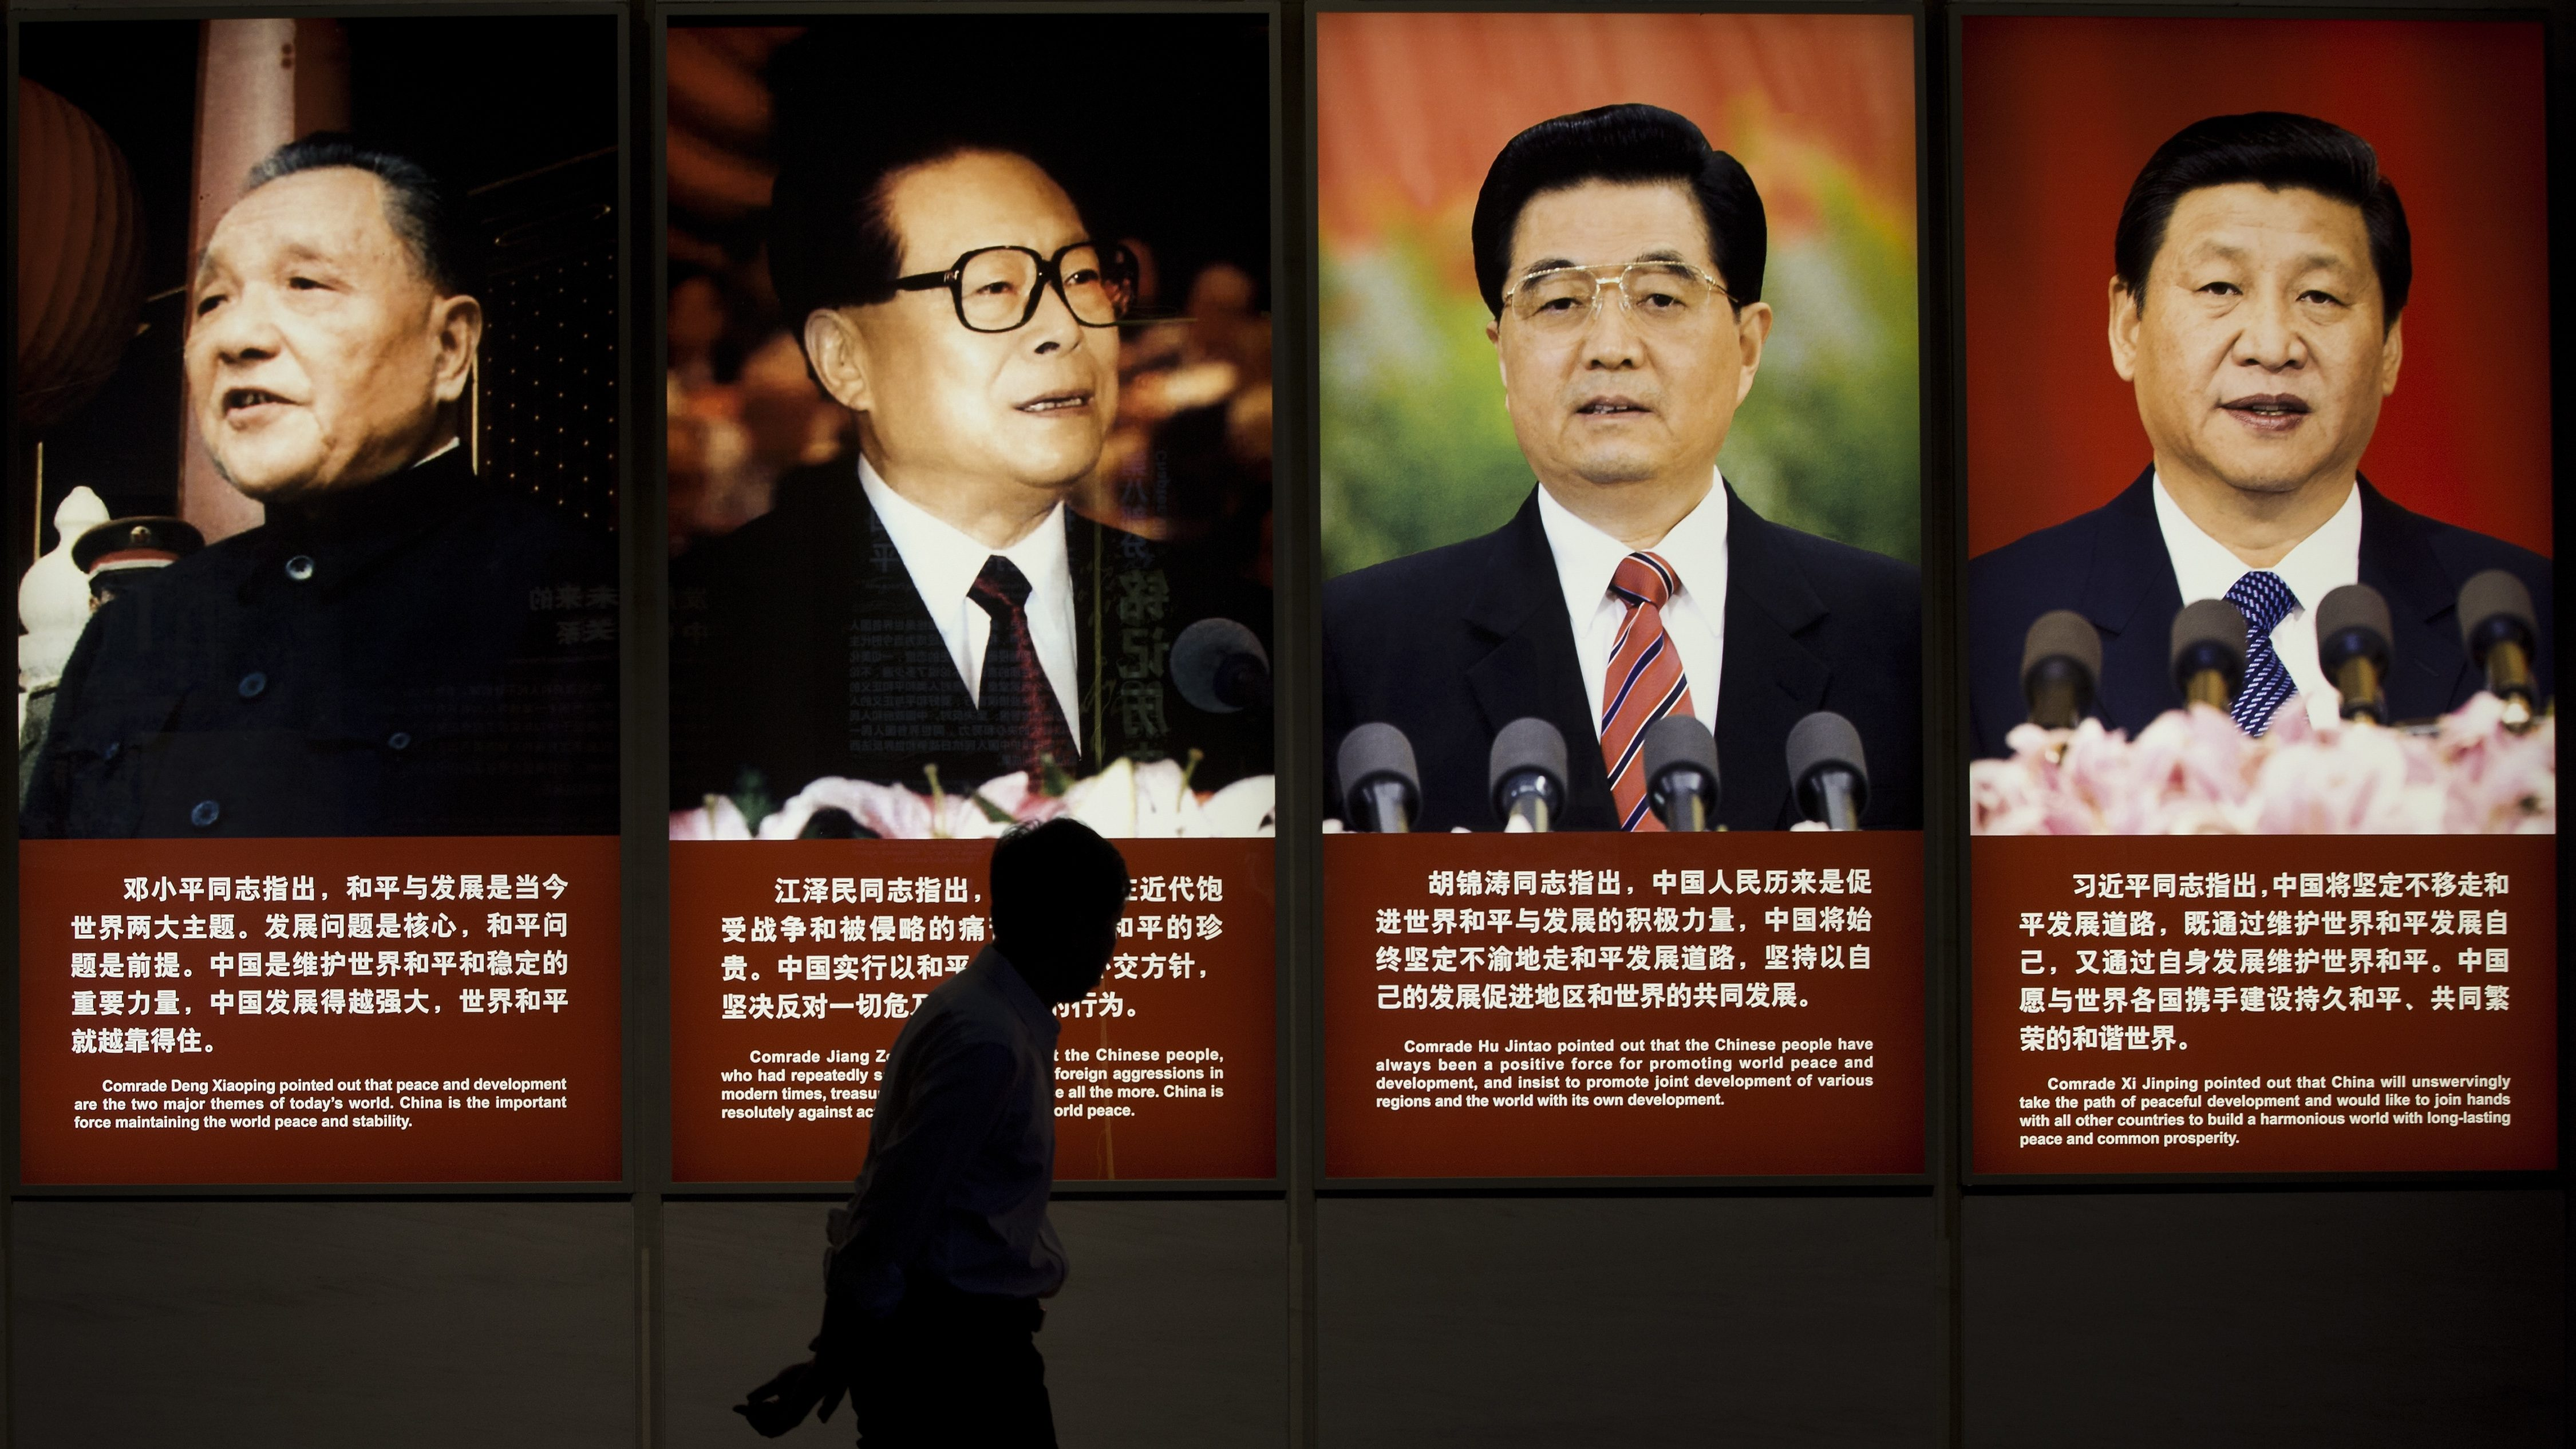 Xi Jinping could now rule China for life—just what Deng